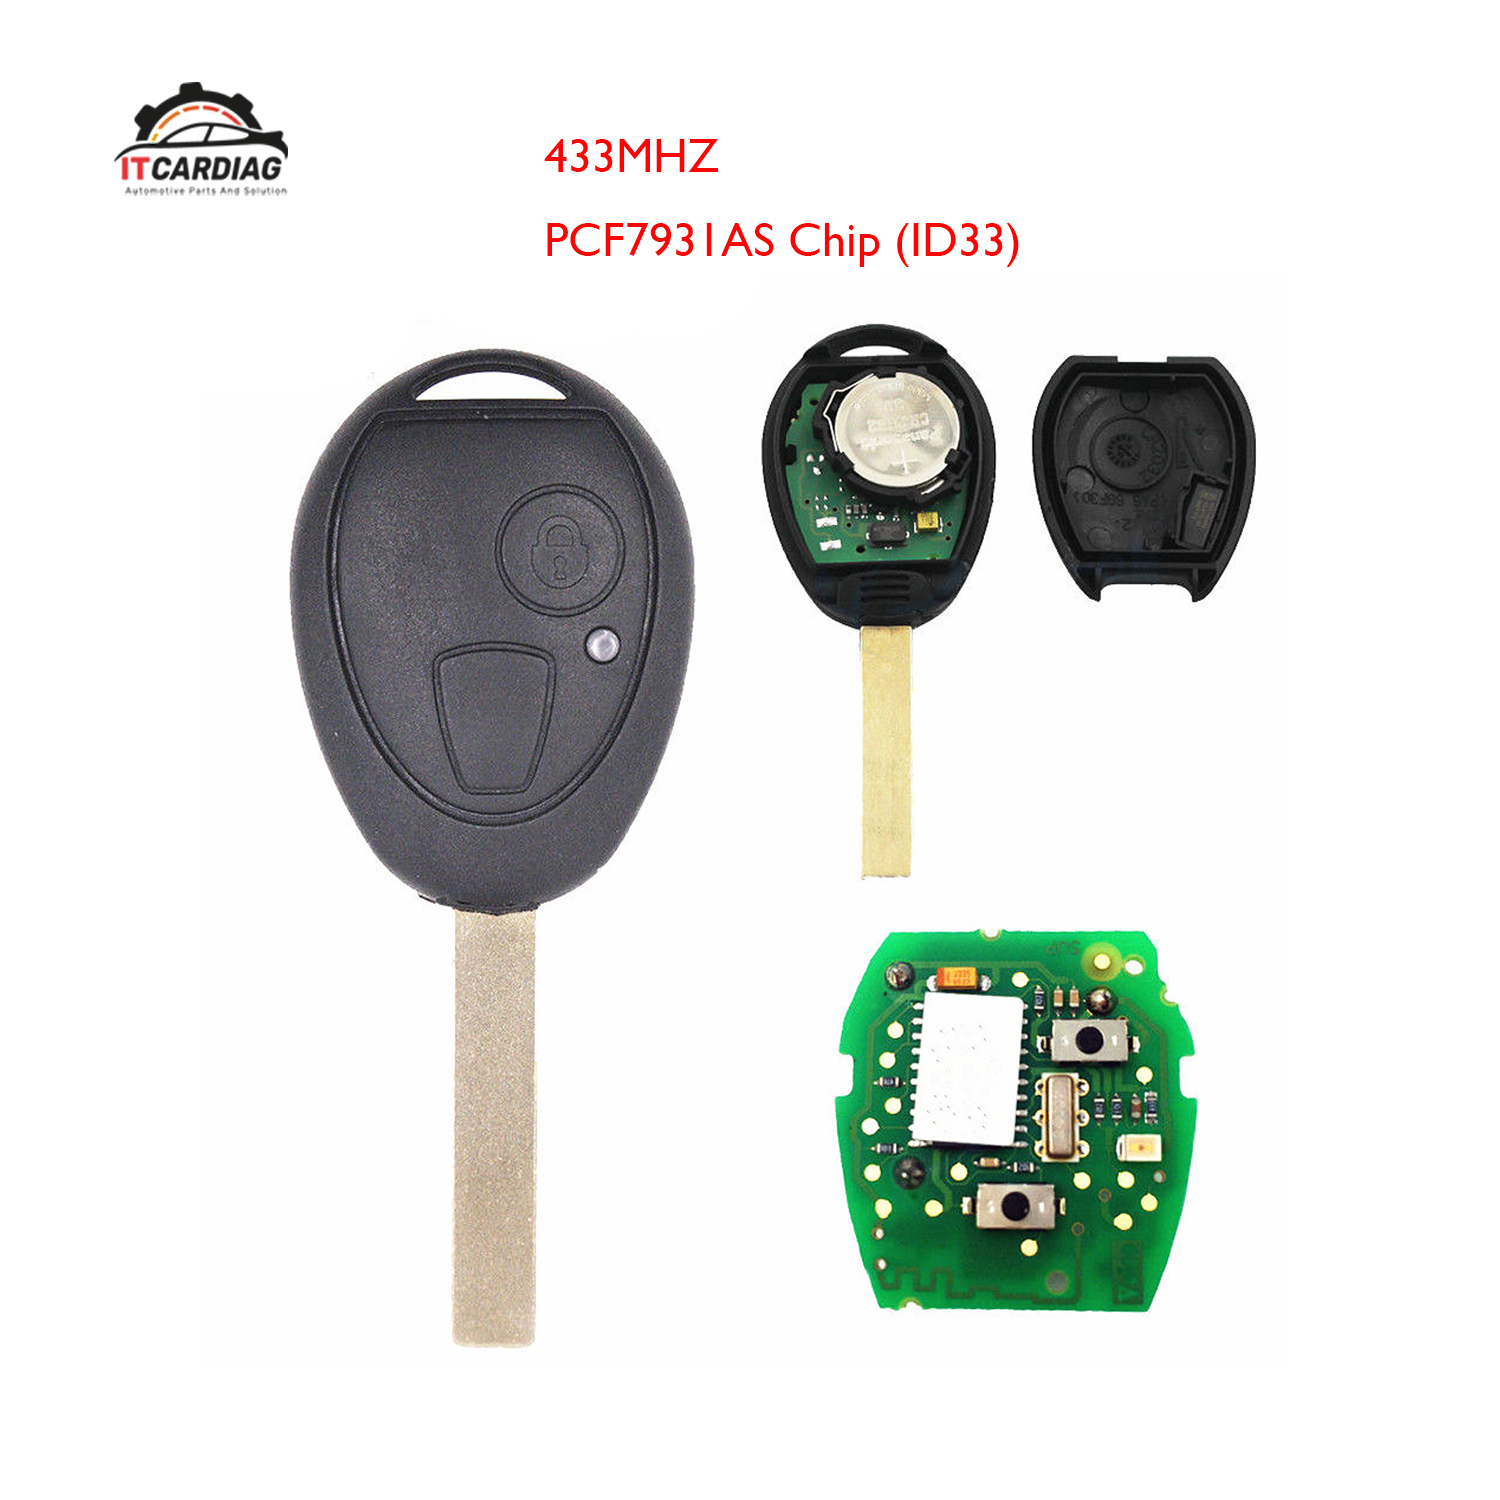 Replacement <font><b>Remote</b></font> Car <font><b>Key</b></font> Fob 433MHz ID33 PCF7931AS Chip <font><b>for</b></font> <font><b>BMW</b></font> Mini Copper, <font><b>for</b></font> Land Rover 75 MG ZT 2002-2005 image